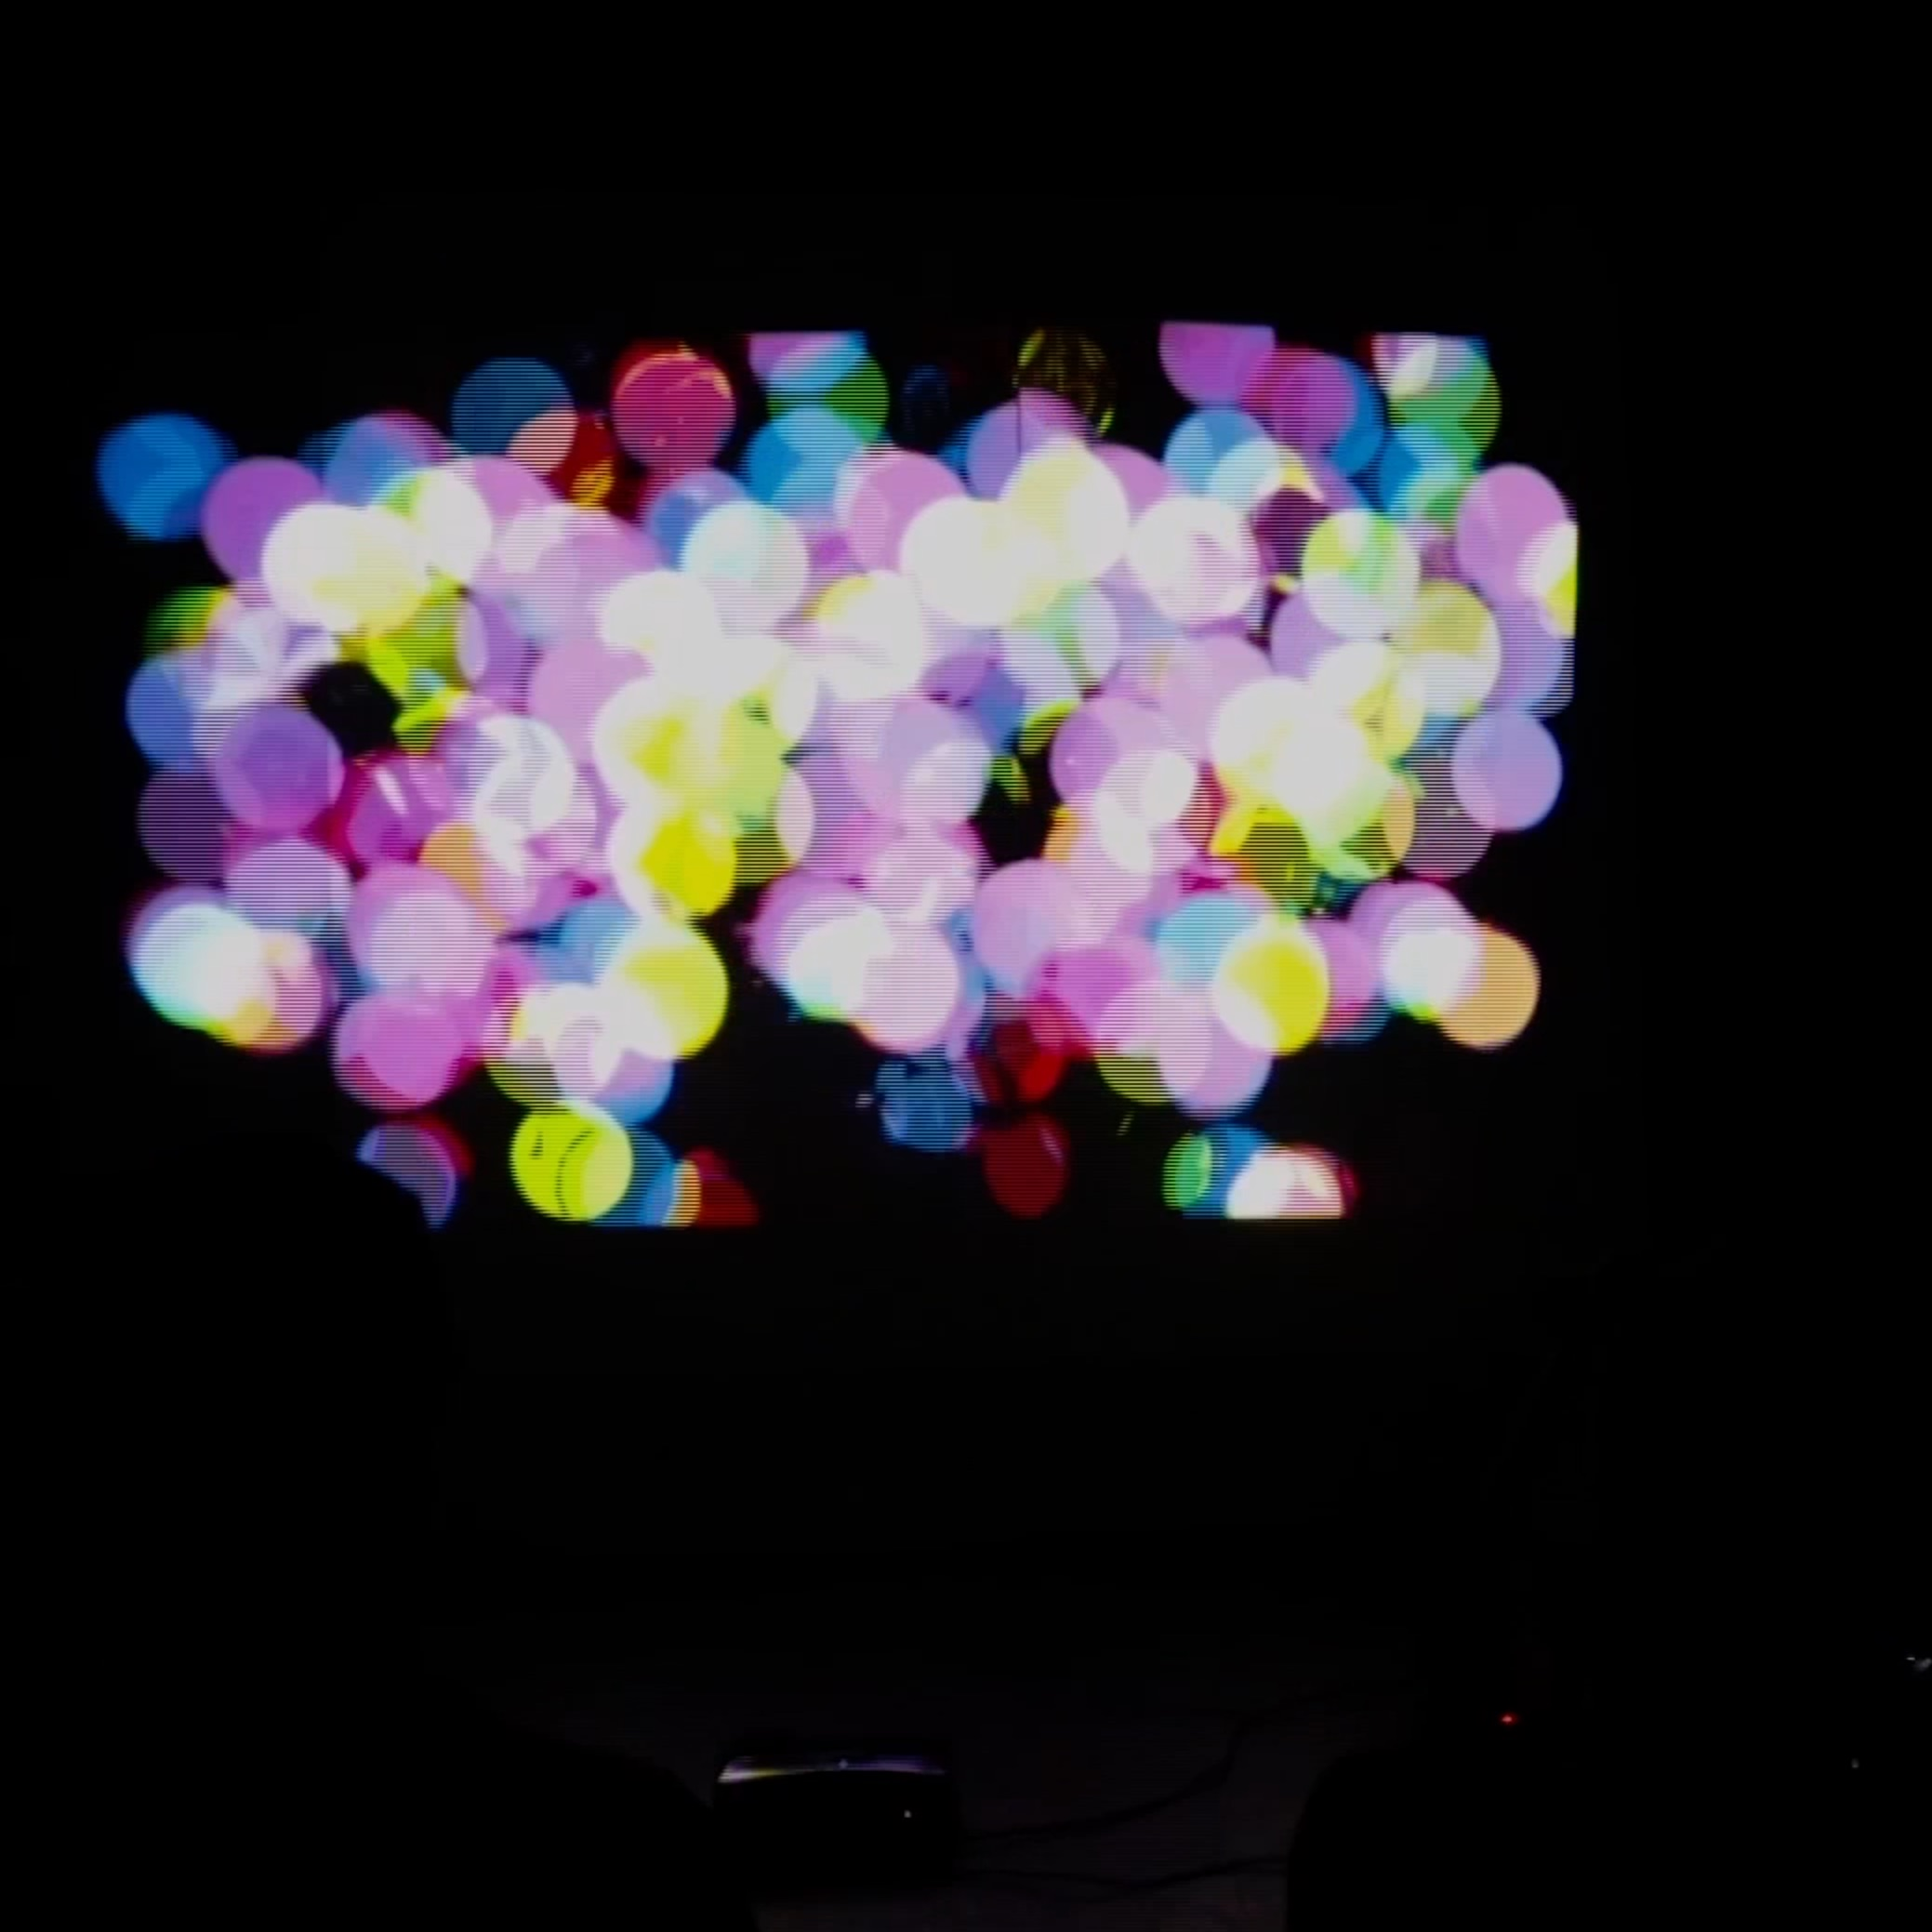 live electronics + visuals